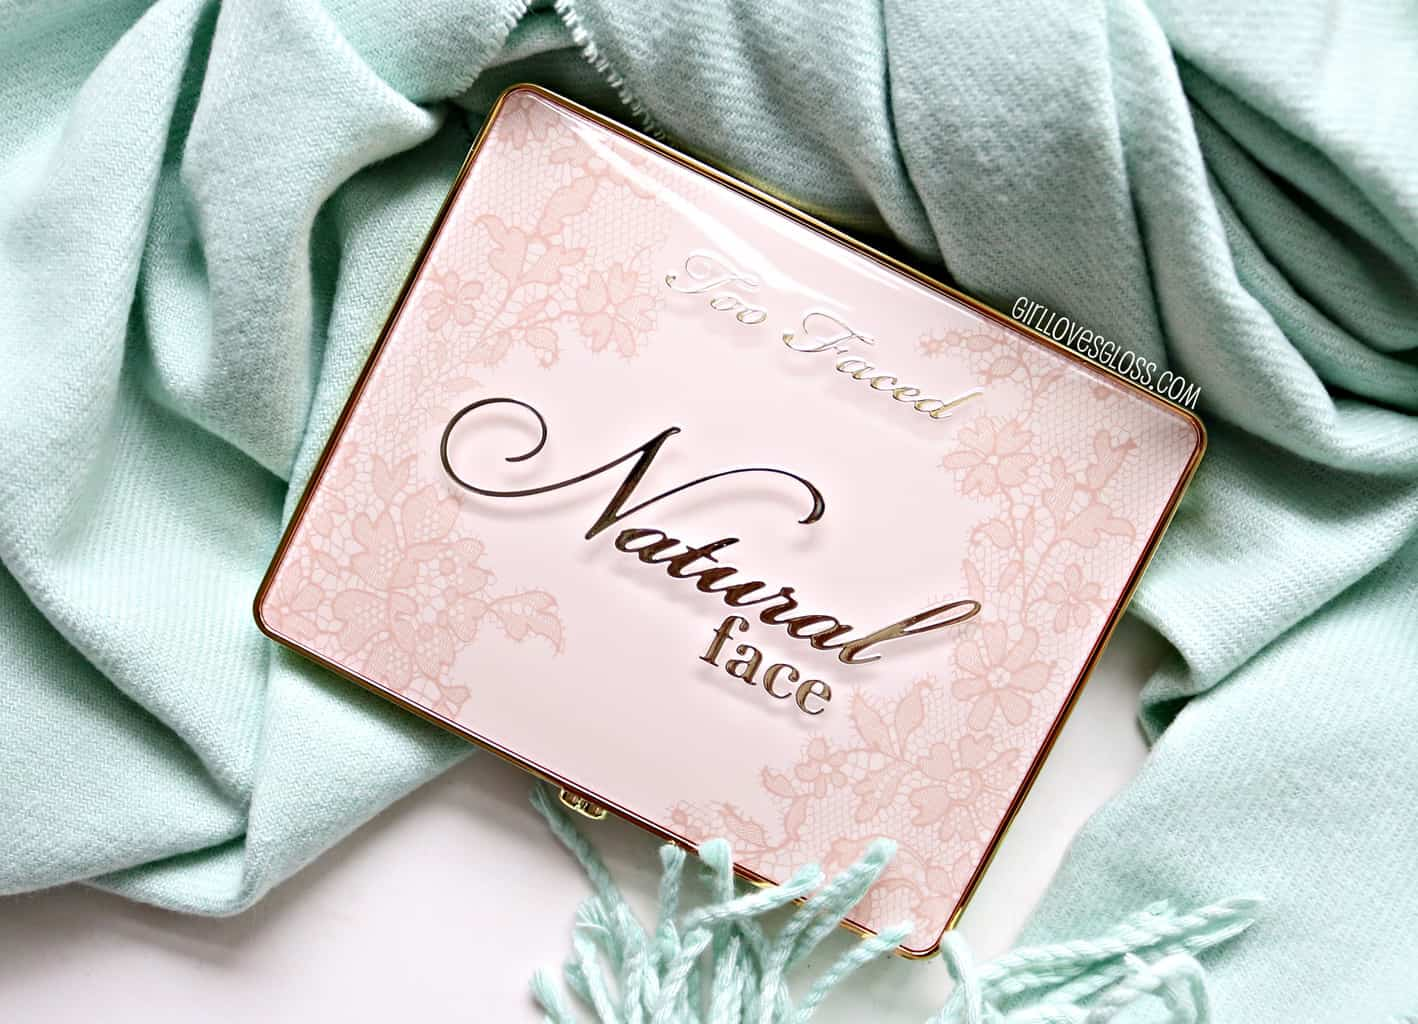 Too Faced Natural Face Palette | AKA I'm So Glad It's Not Another Peach Palette